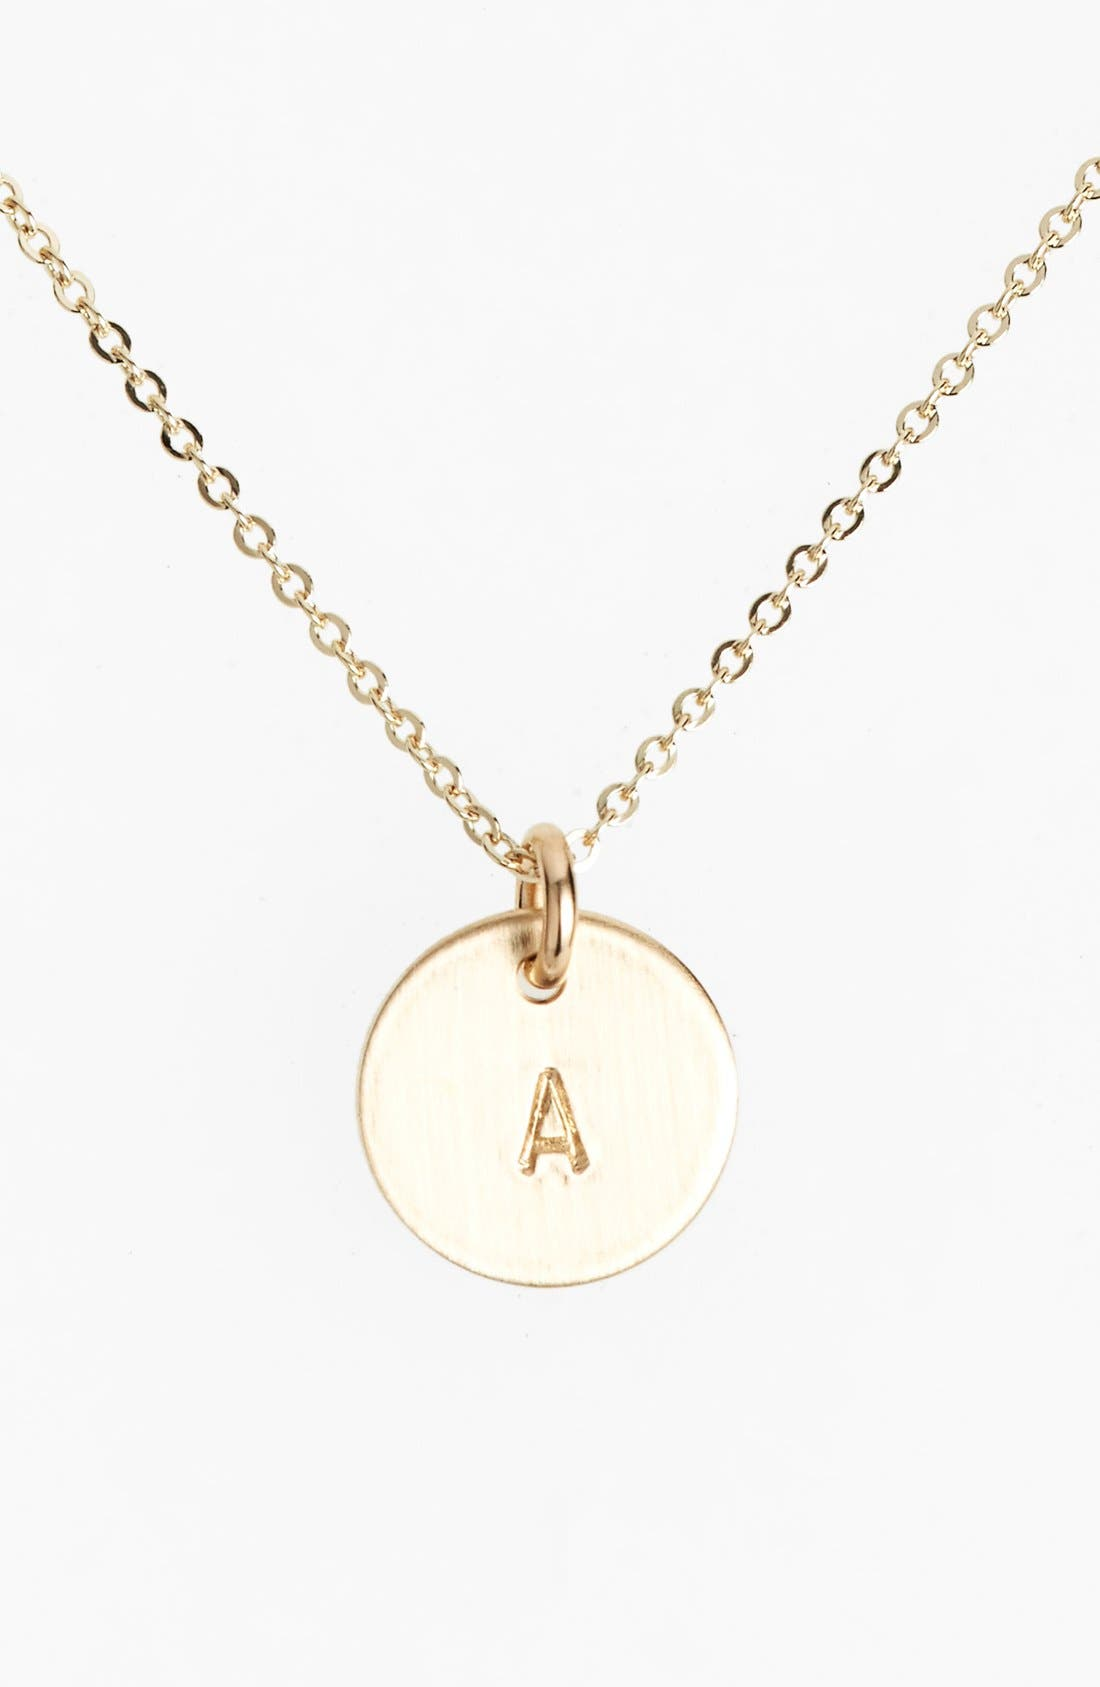 14k-Gold Fill Initial Mini Circle Necklace,                         Main,                         color, 14K GOLD FILL A